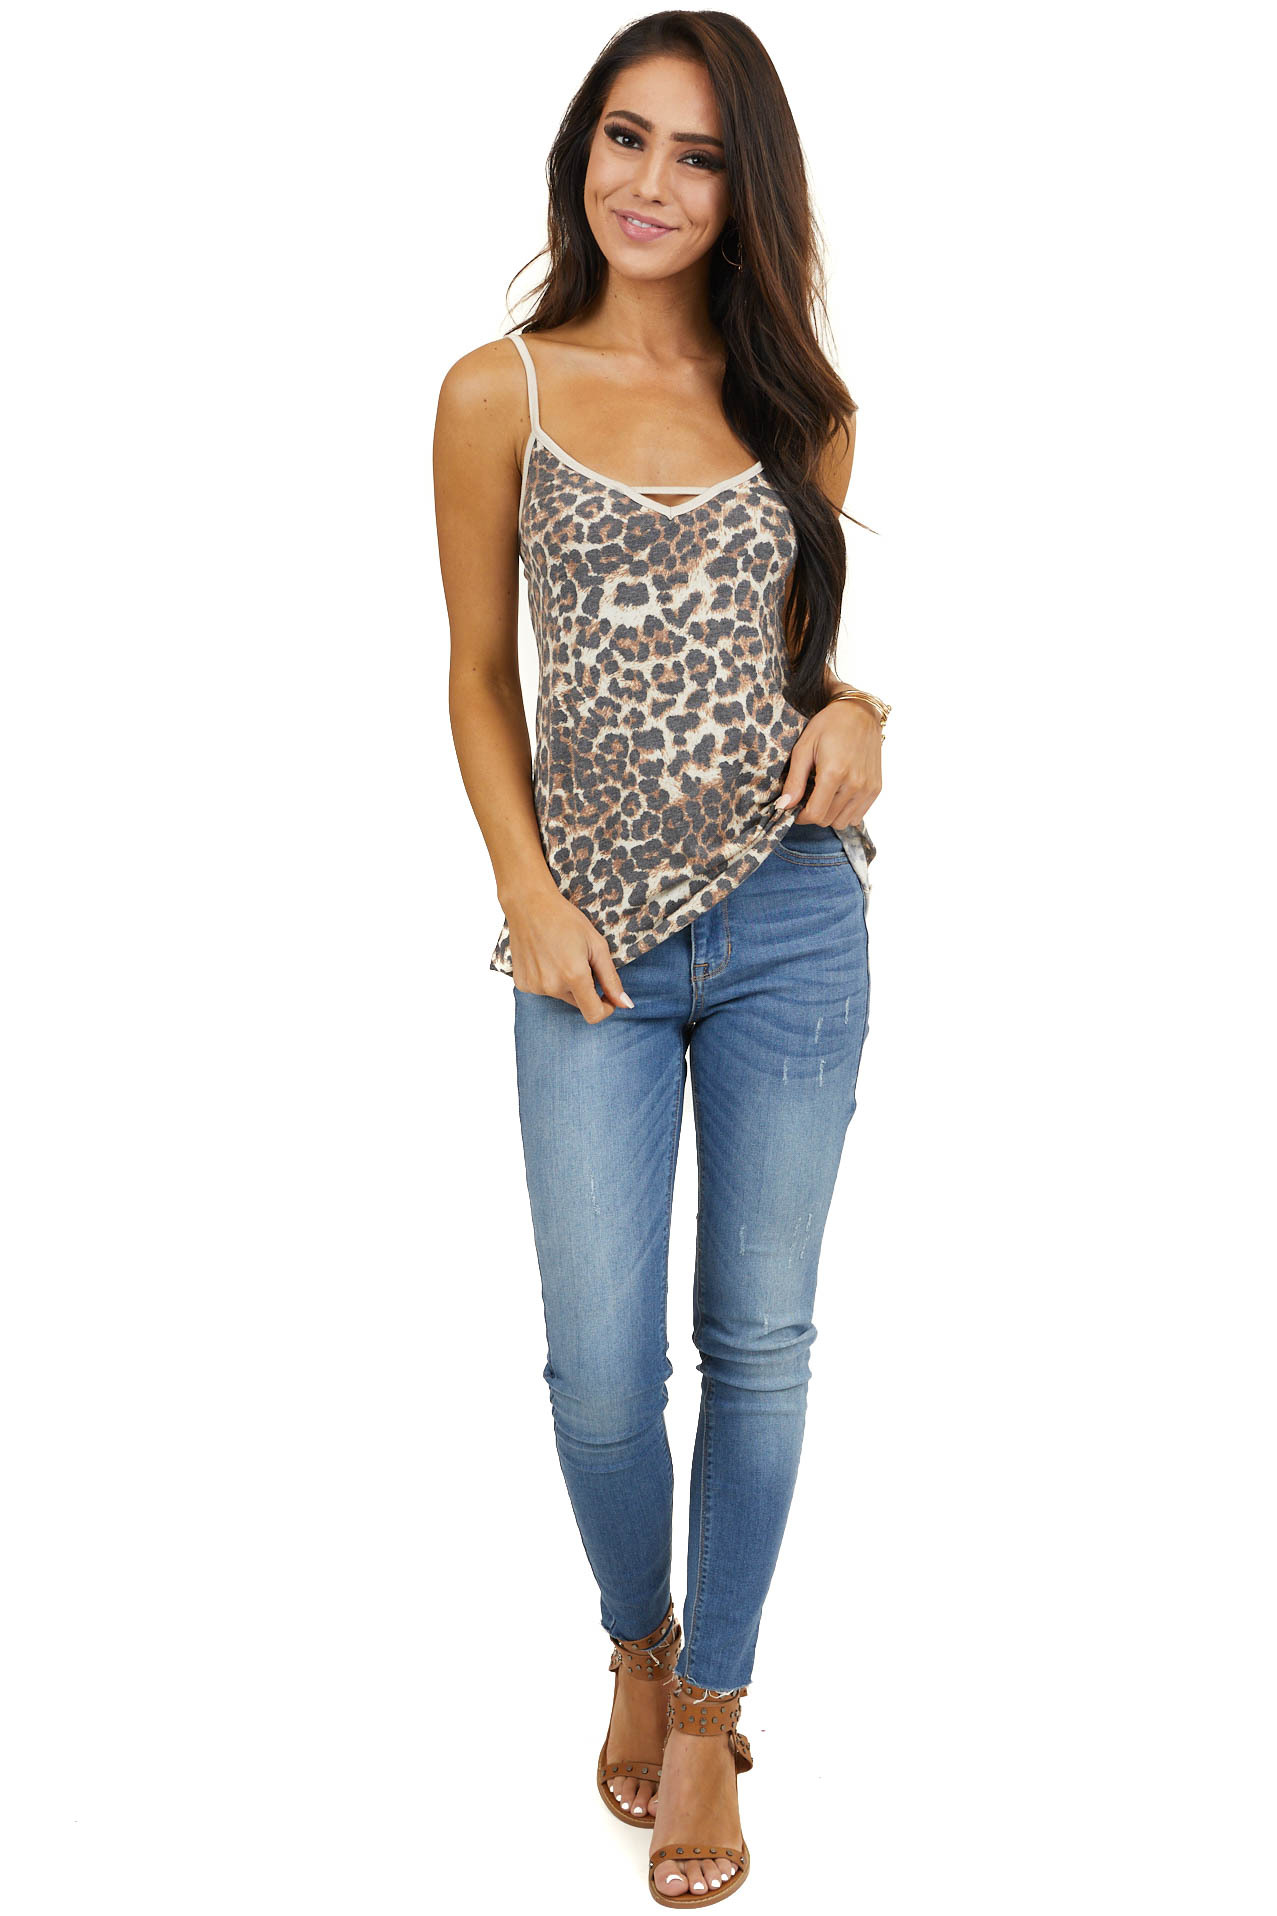 Ivory and Taupe Leopard Print Tank Top with Cutout Detail